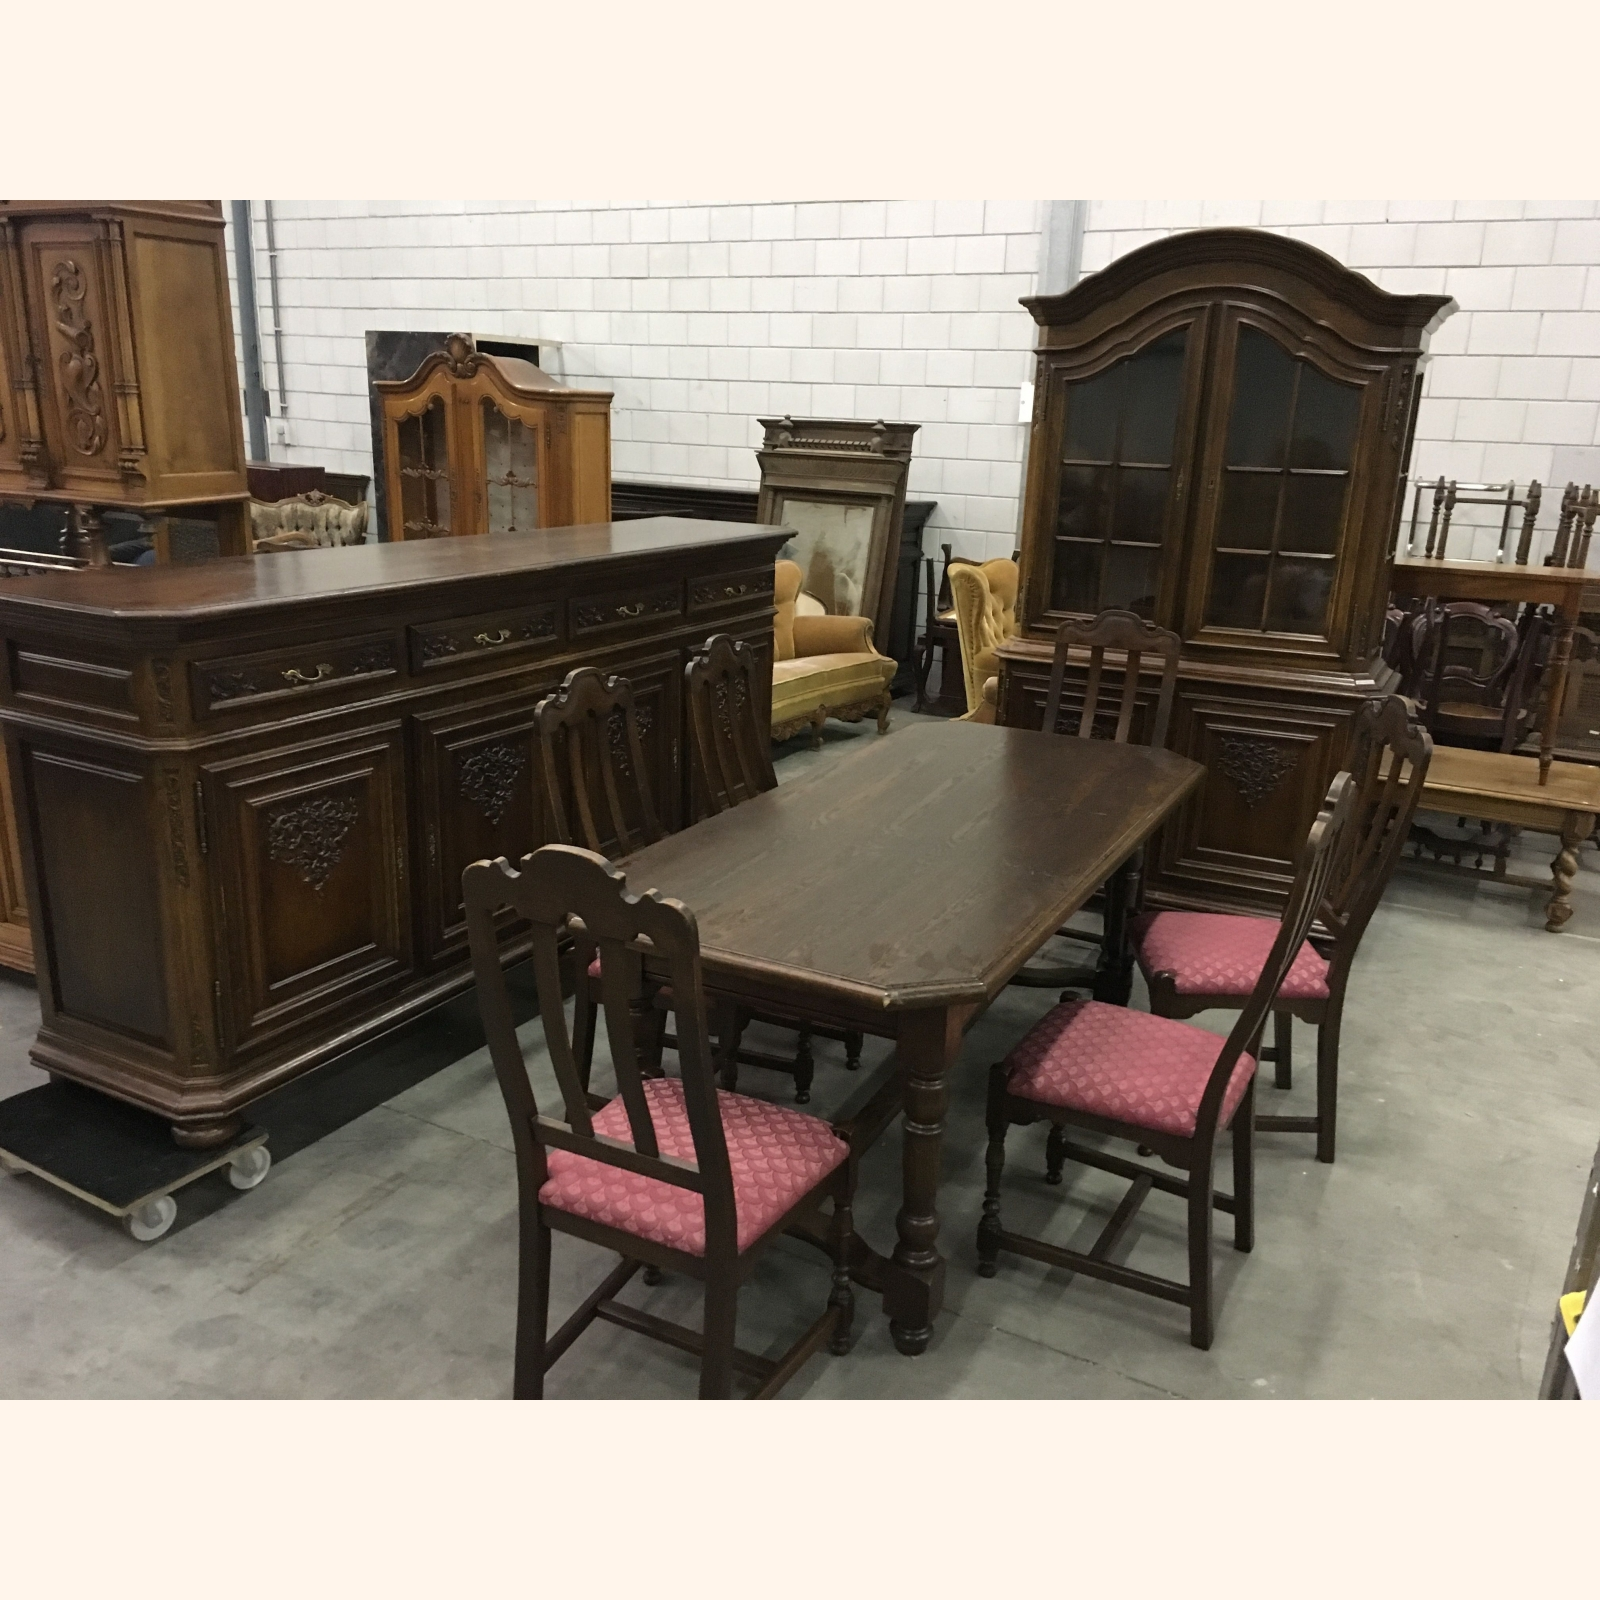 A++ A 43 43 Solid Wood Dining Room Furniture Sets Mix 1m3 A